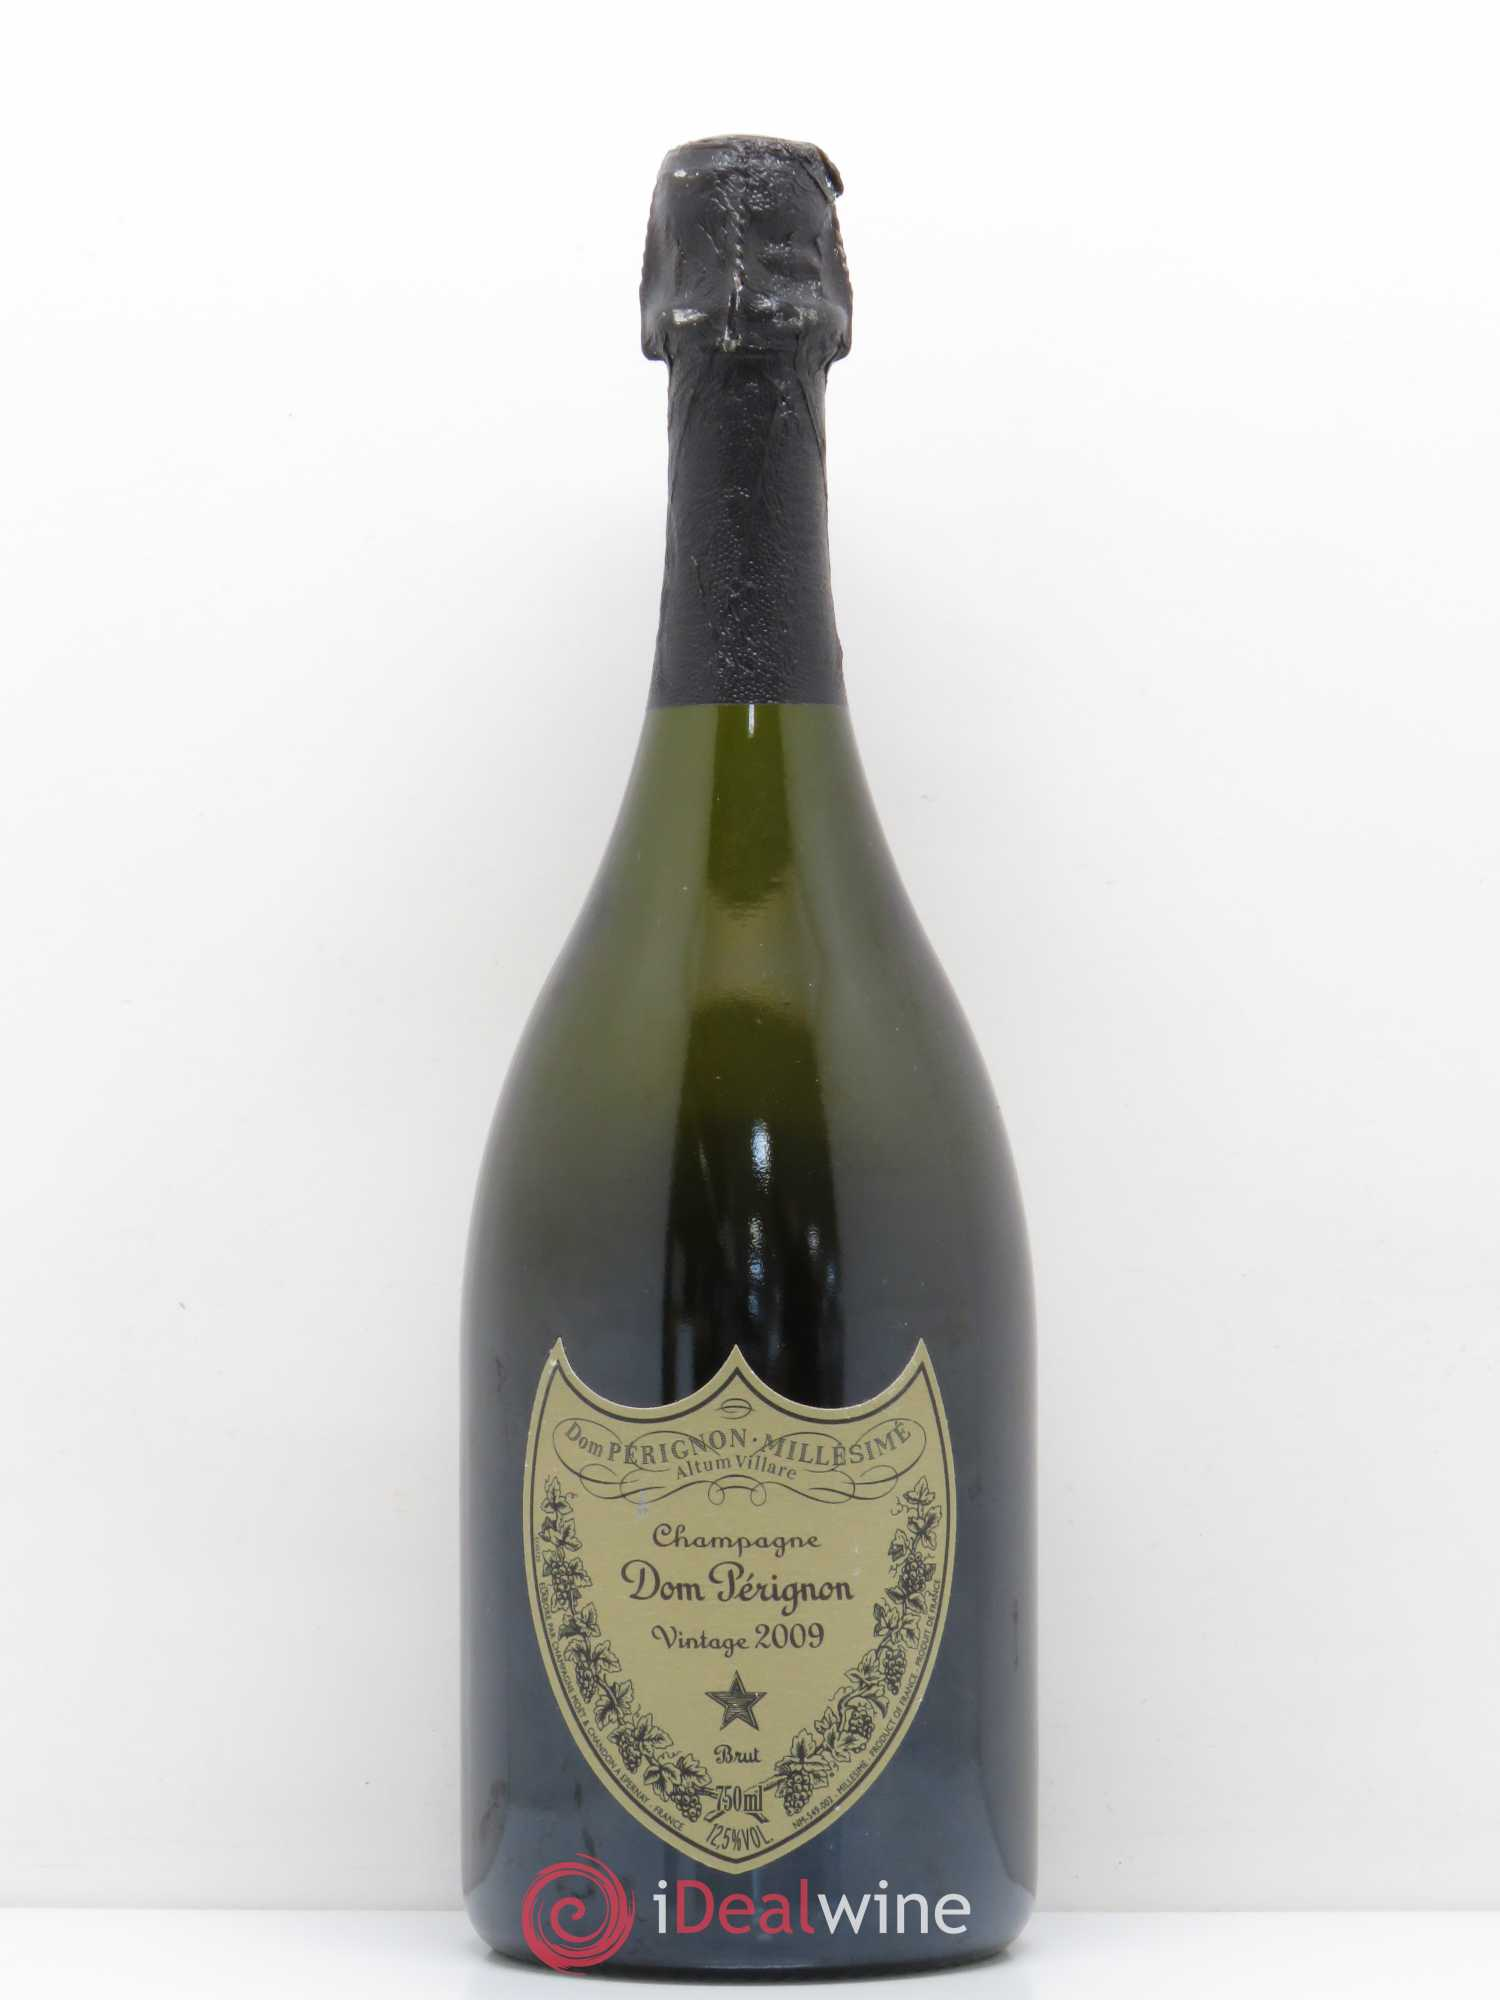 Dom Pérignon Moët & Chandon  2009 - Lot of 1 Bottle